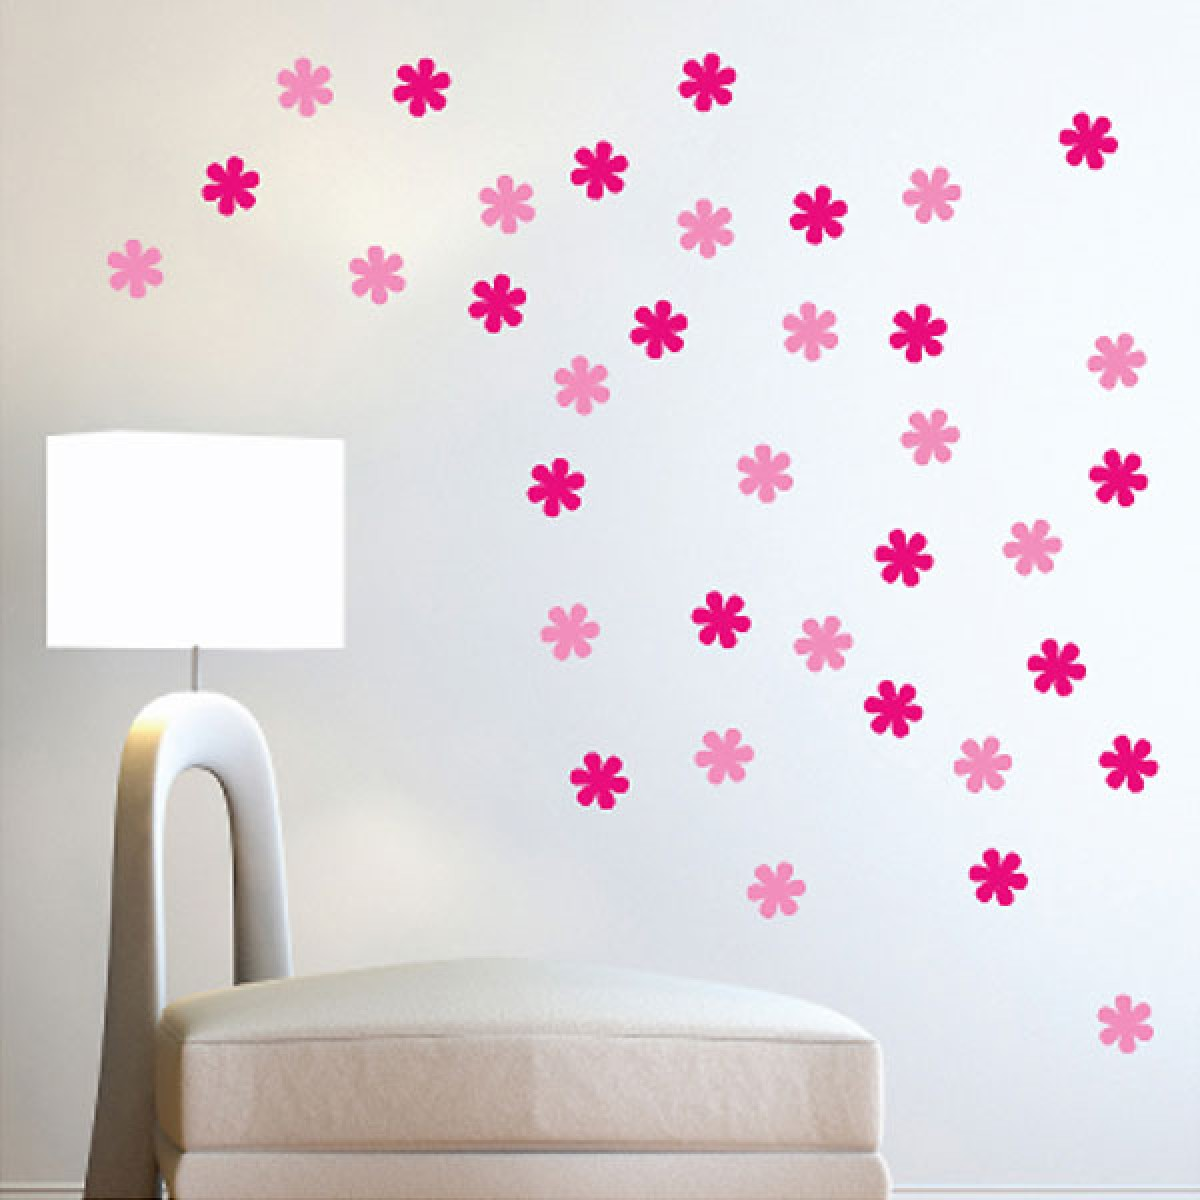 flower wall stickers floral wall decor - Wall Designs Stickers